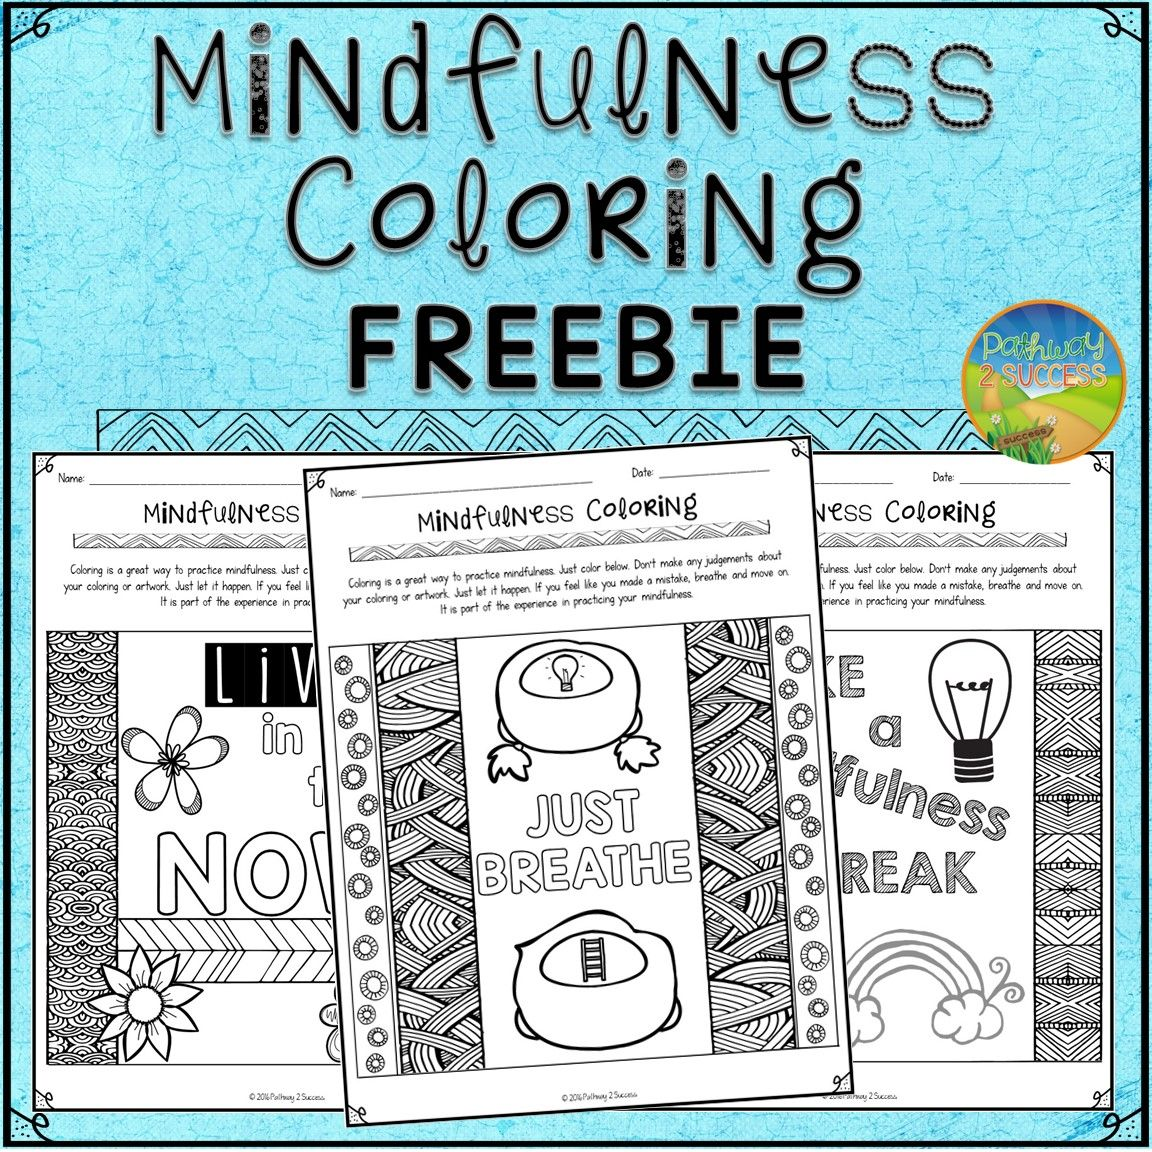 Free coloring pages for young adults - Use These Free Coloring Pages To Help Kids And Young Adults Practice Mindfulness To Help Promote